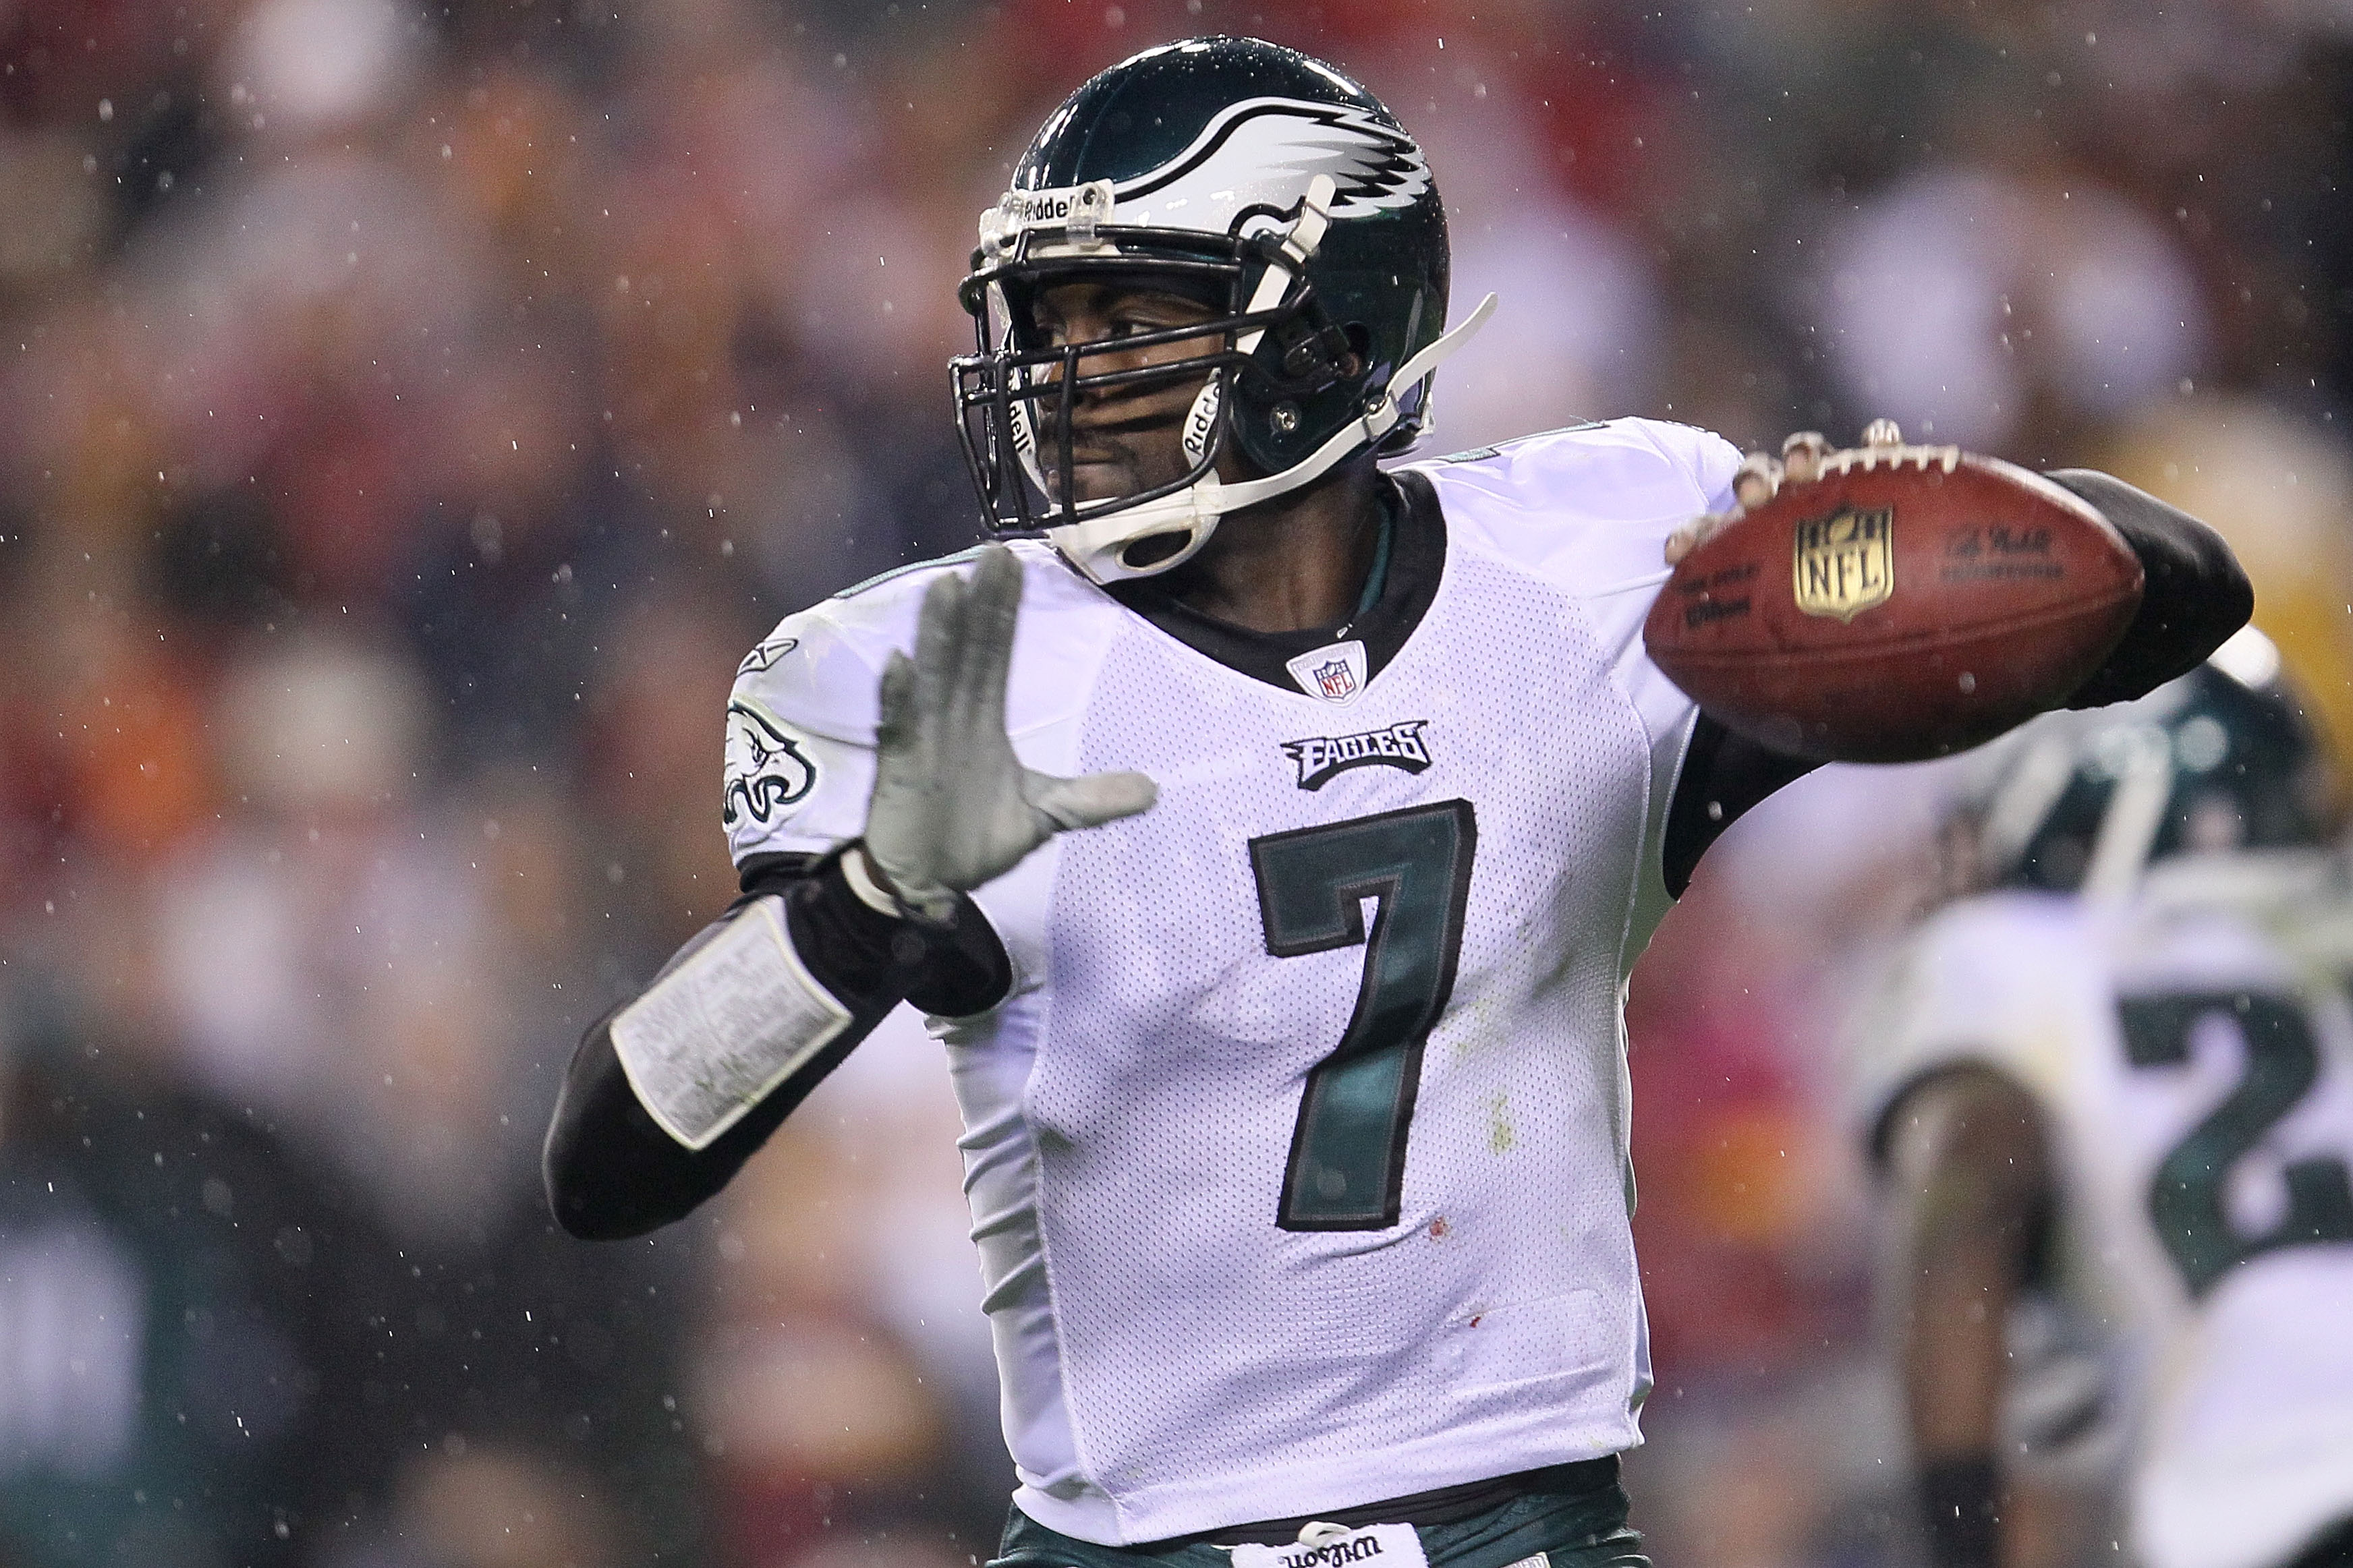 LANDOVER, MD - NOVEMBER 15:  Michael Vick #7 of the Philadelphia Eagles throws a pass against the Washington Redskins on November 15, 2010 at FedExField in Landover, Maryland.  (Photo by Chris McGrath/Getty Images)